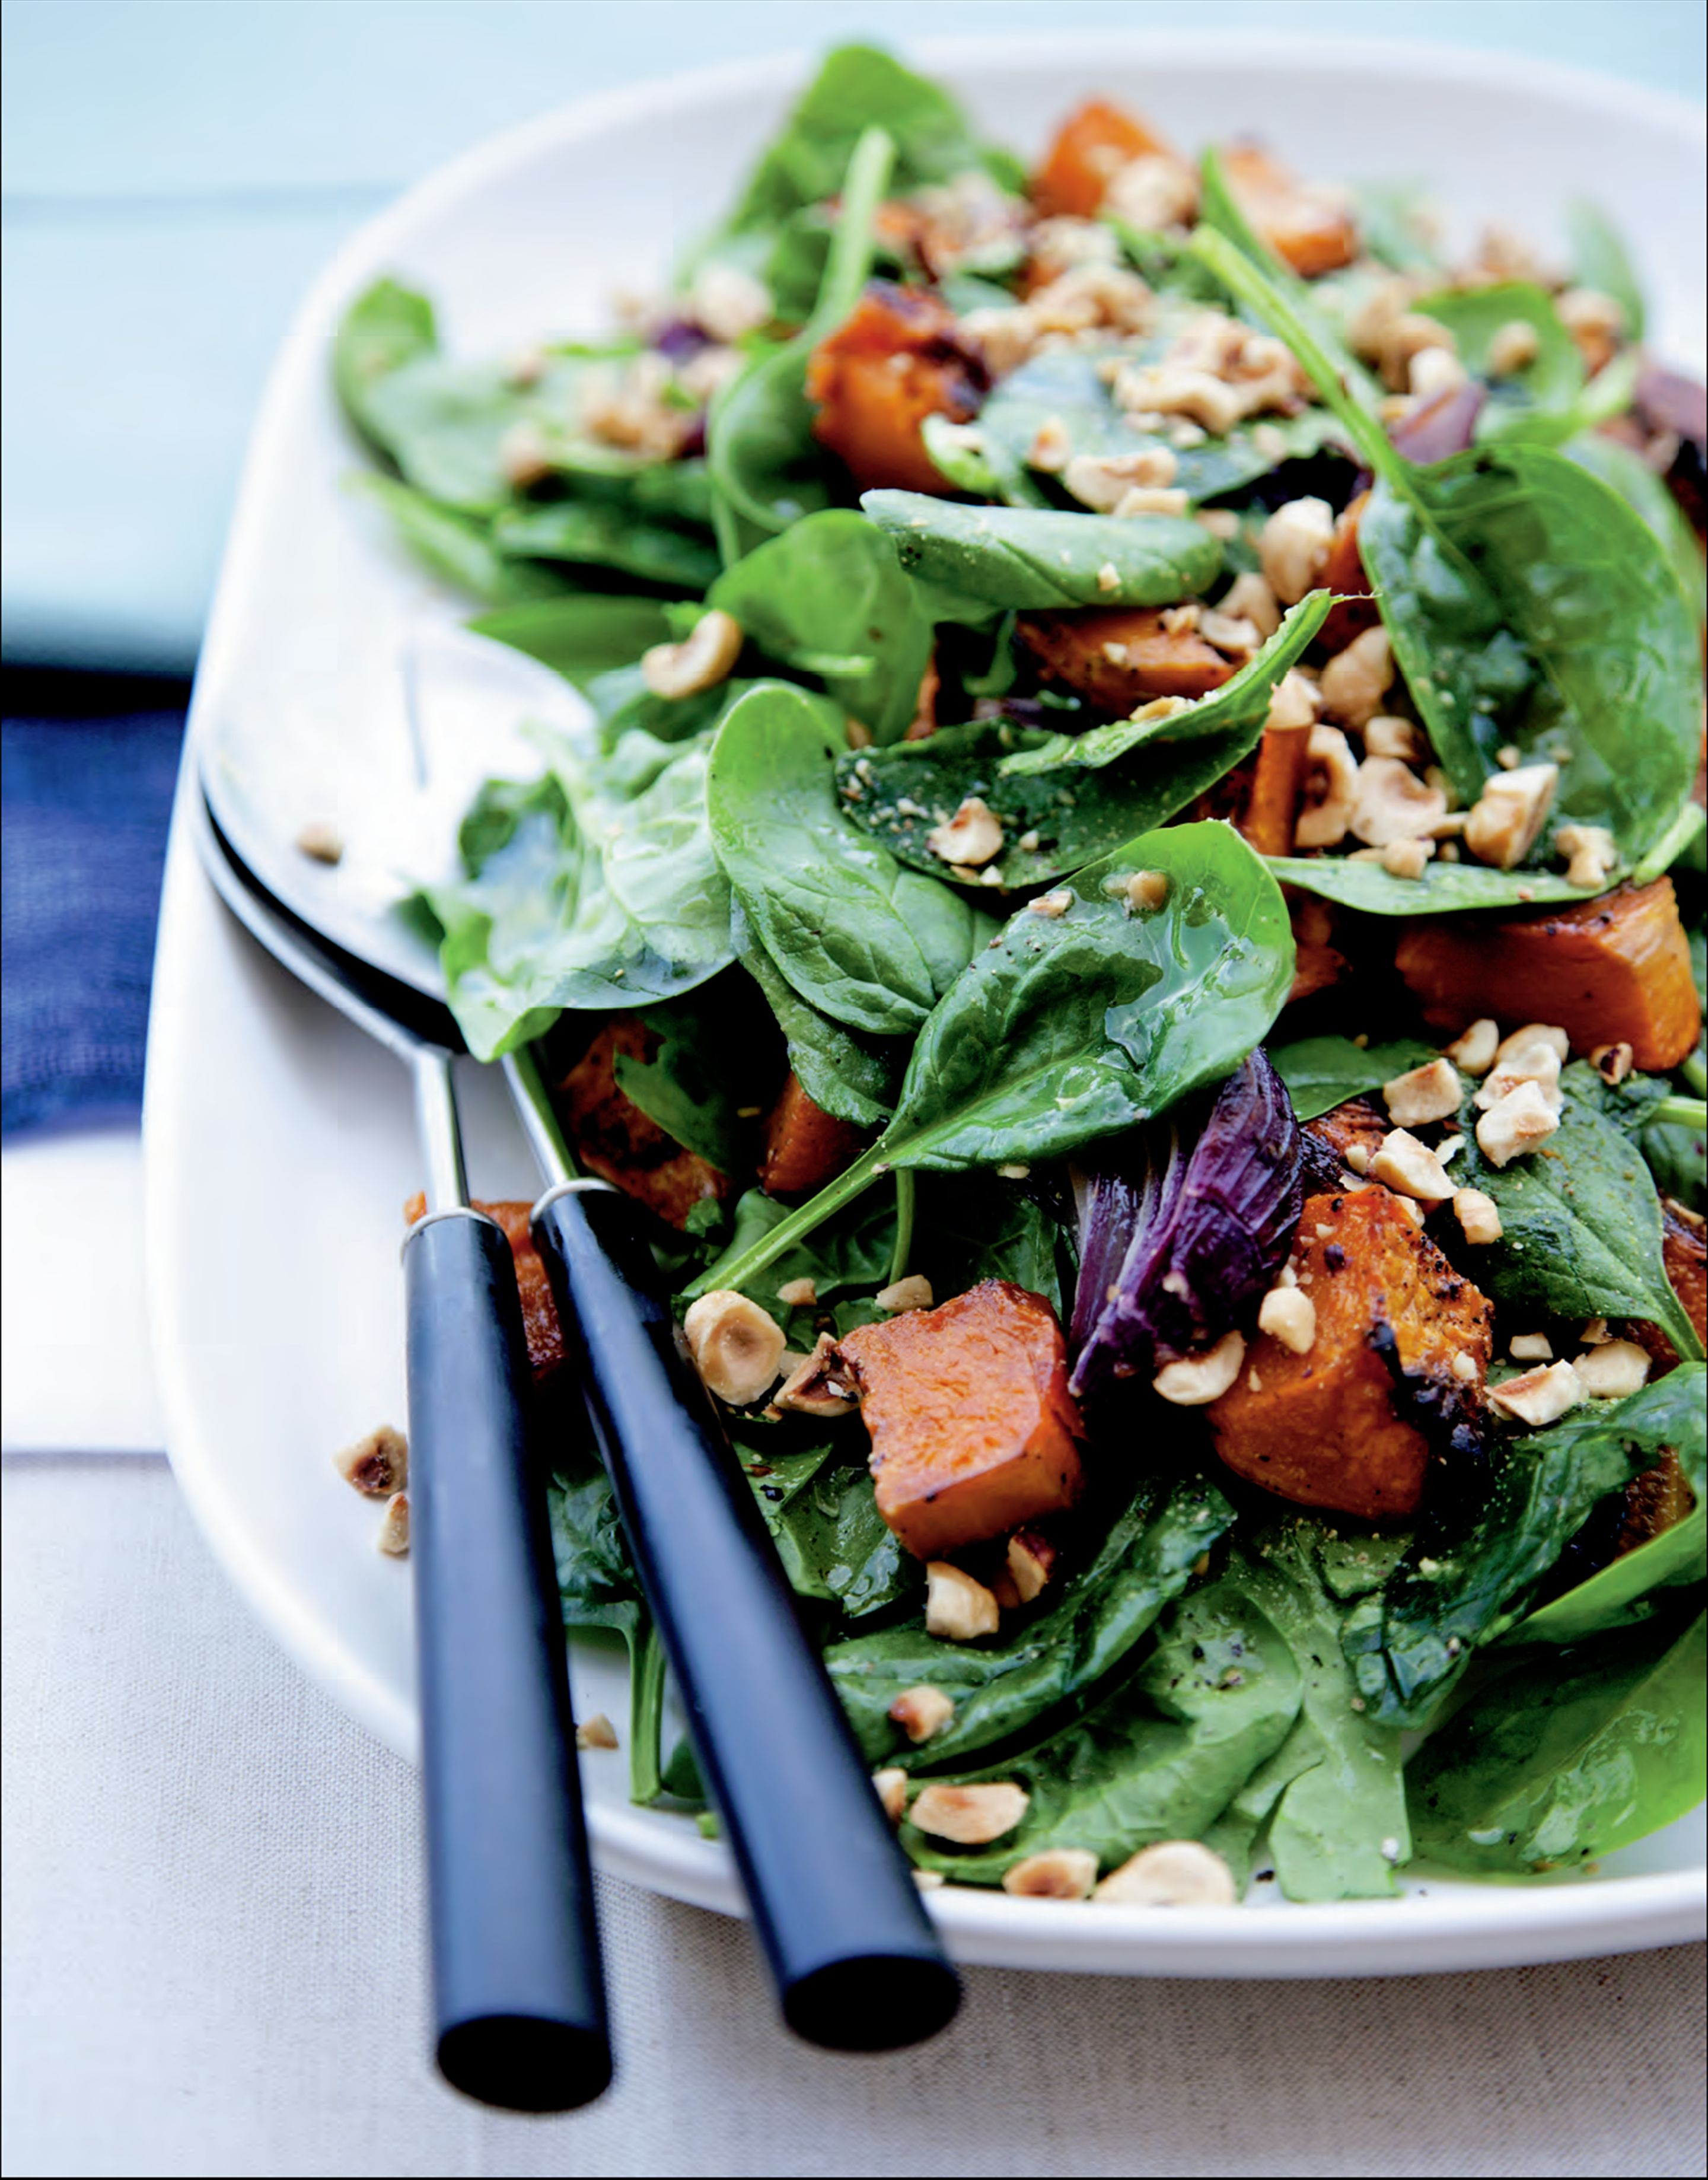 Roasted pumpkin and hazelnut salad